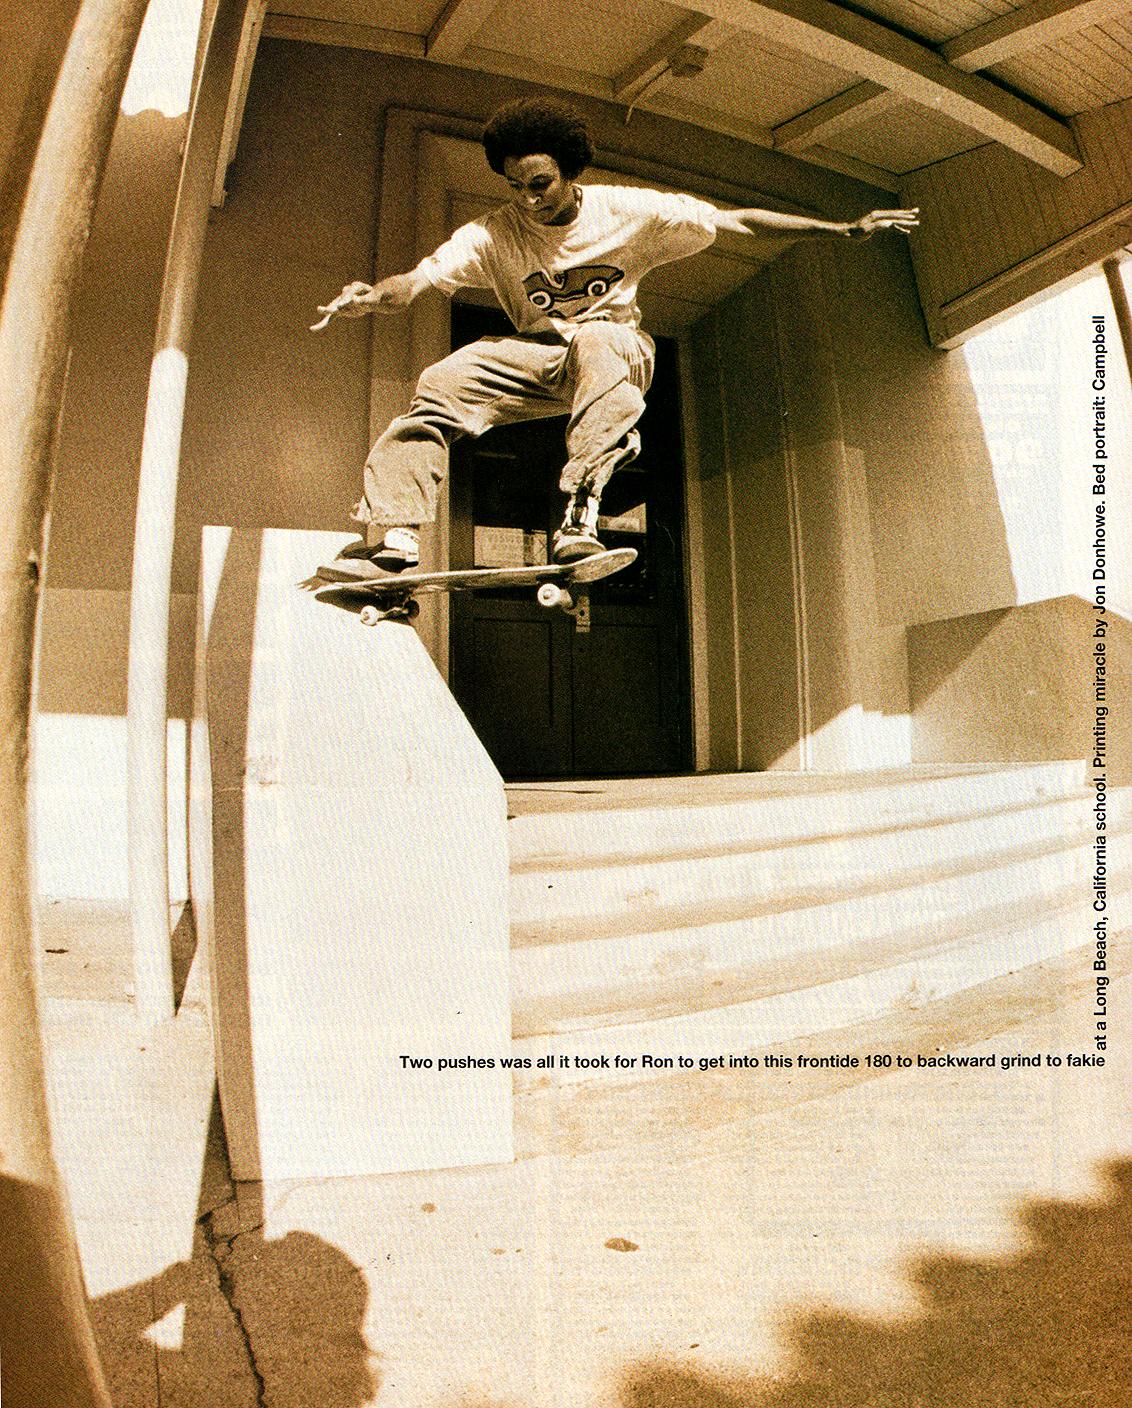 Ron-Chatman-180-nosegrind-swift-march-93